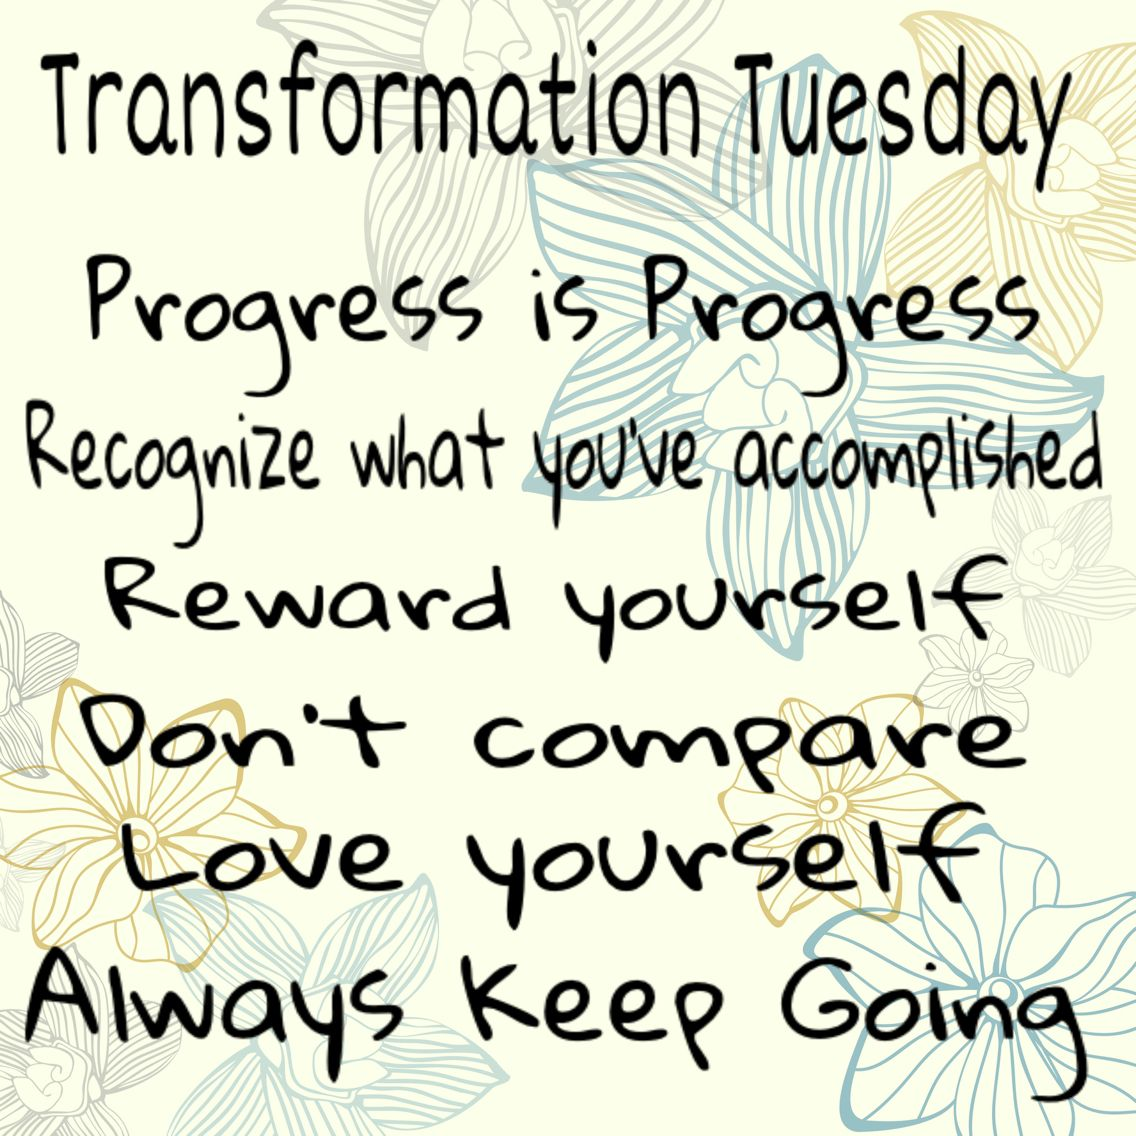 Transformation Tuesday Happy Tuesday Quotes Tuesday Motivation Quotes Transformation Quotes